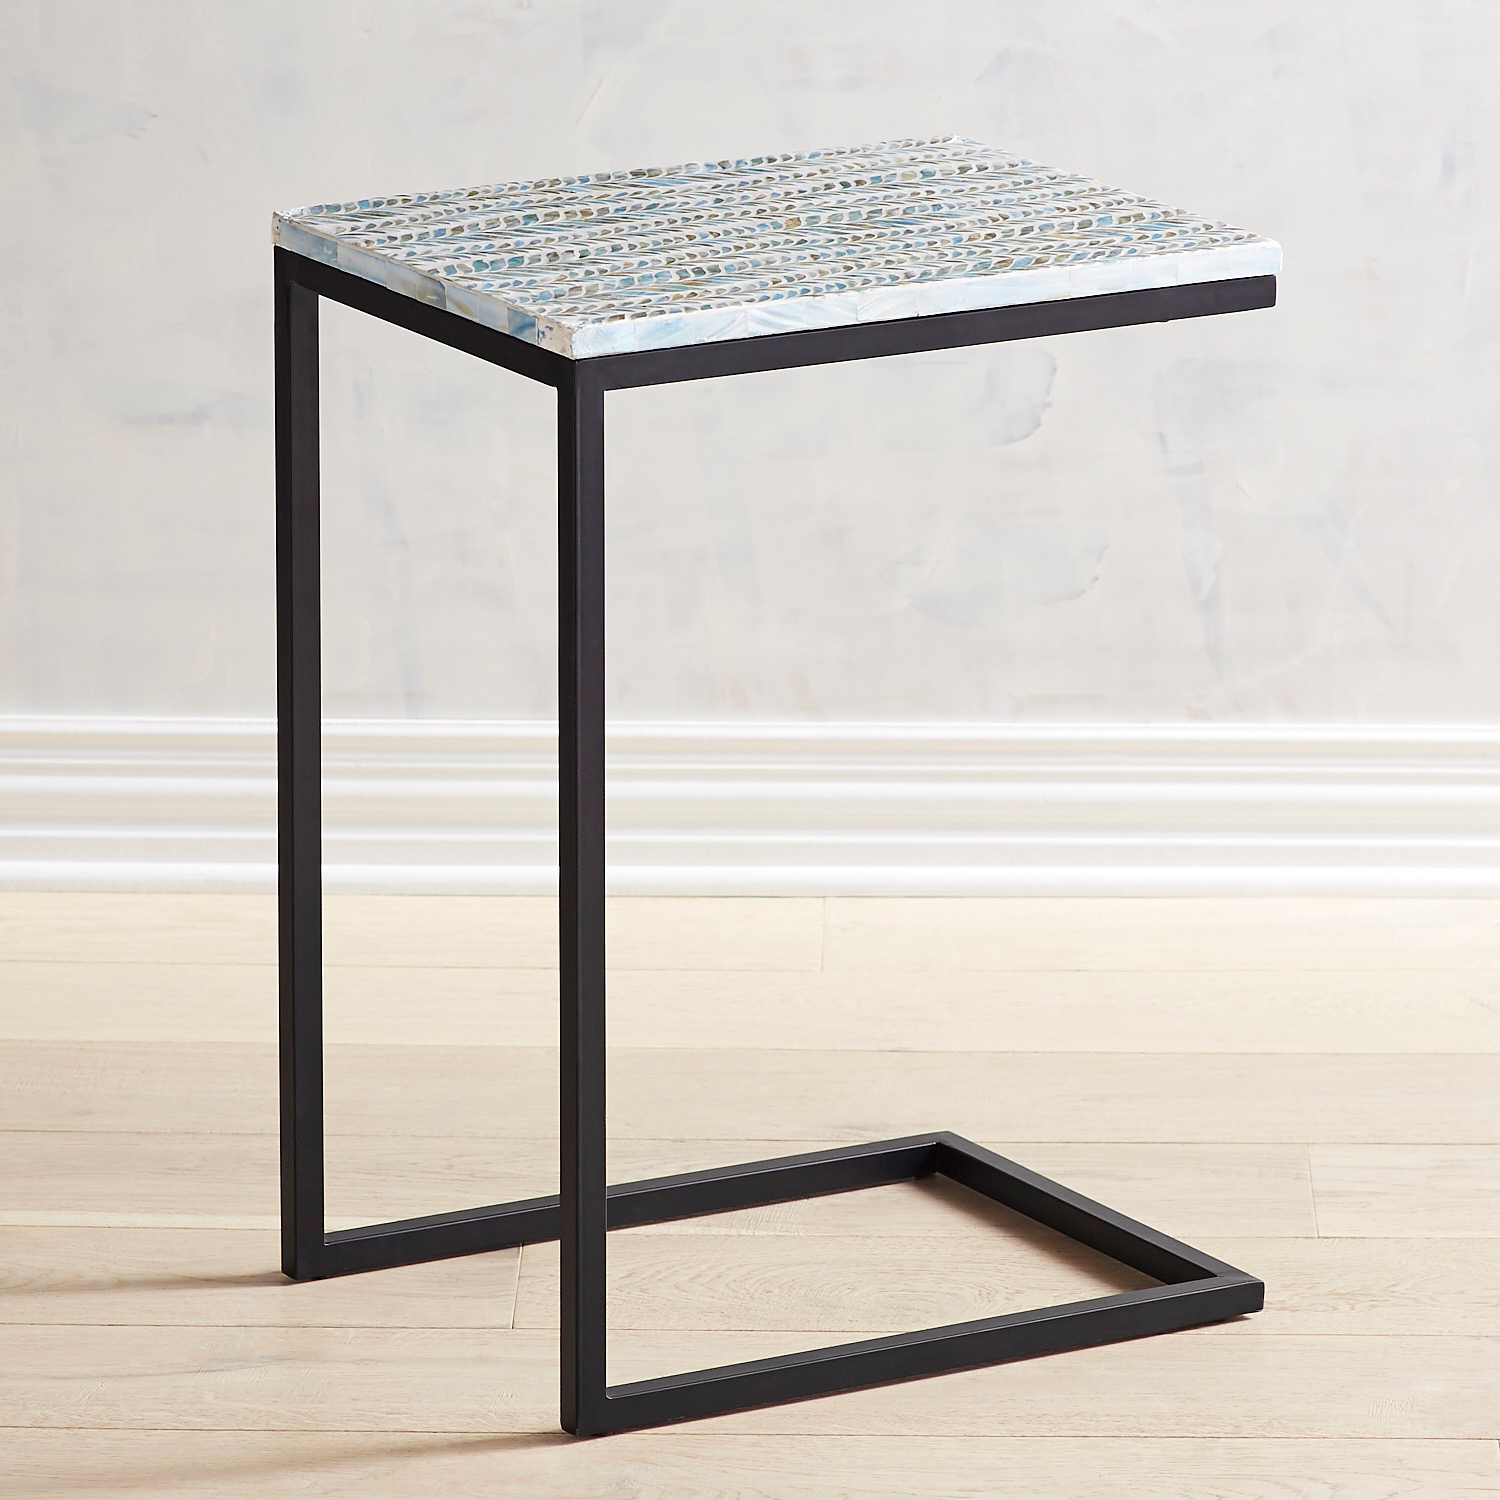 Mother-of-Pearl Teal C-Table